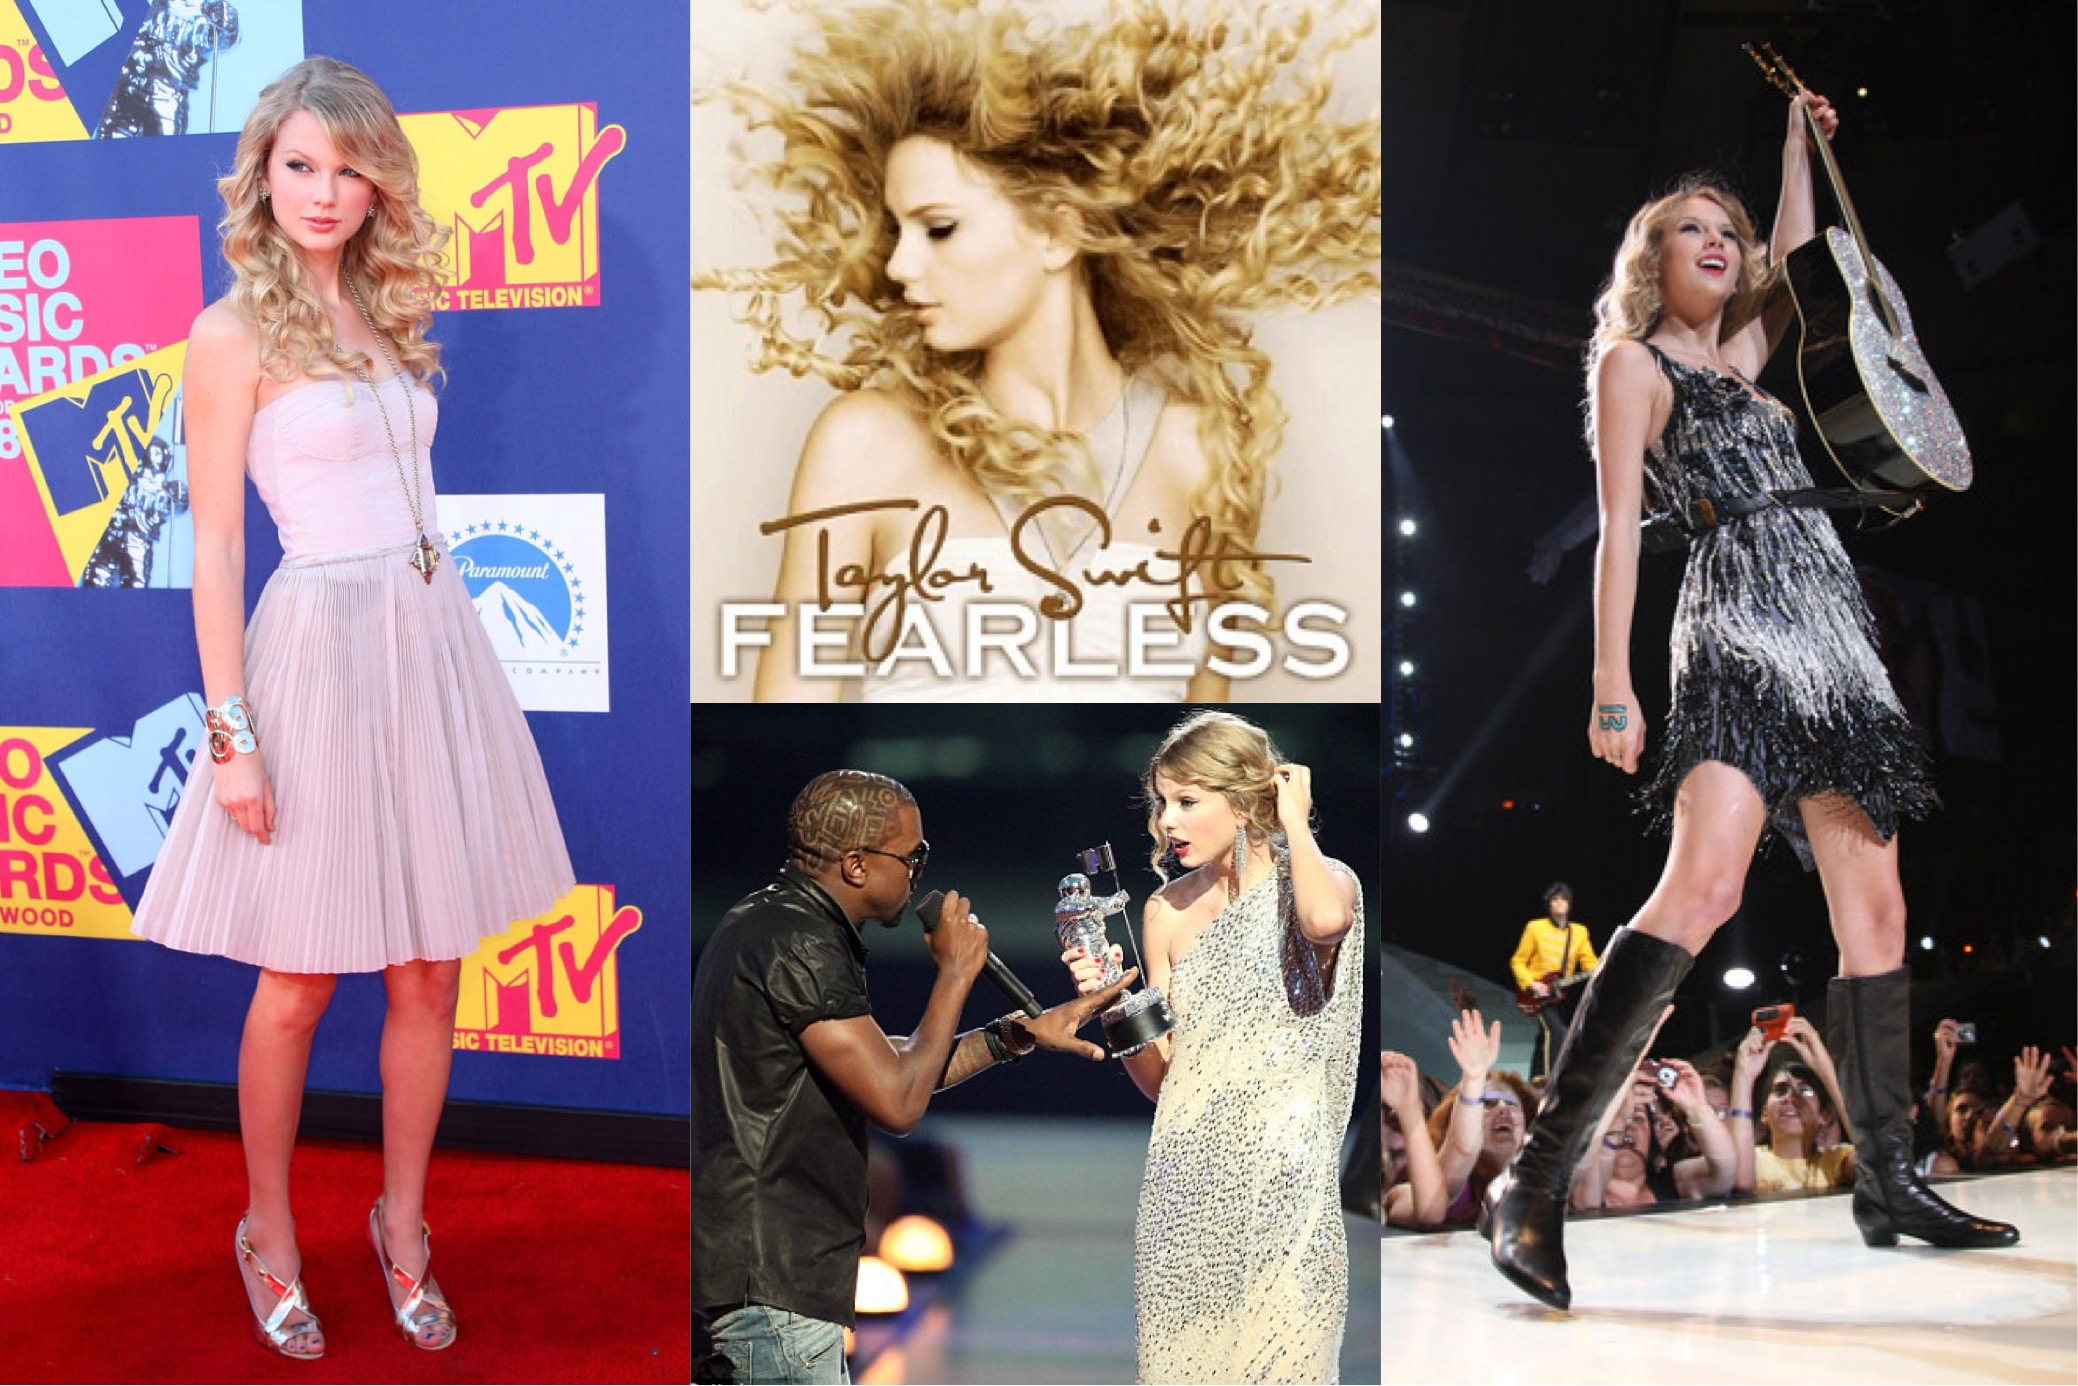 Taylor Swift at the 2008 MTV Video Music Awards,  Fearless  (2008) album cover,2009 MTV Video Music Awards in KaufmanFranco, & 2009 Fearless Tour concert in New York City   (Photo: Frederick M. Brown/Getty Images, Taylor Swift Wiki, Christopher Polk/Getty Images, Jason Kempkin/Getty Images )